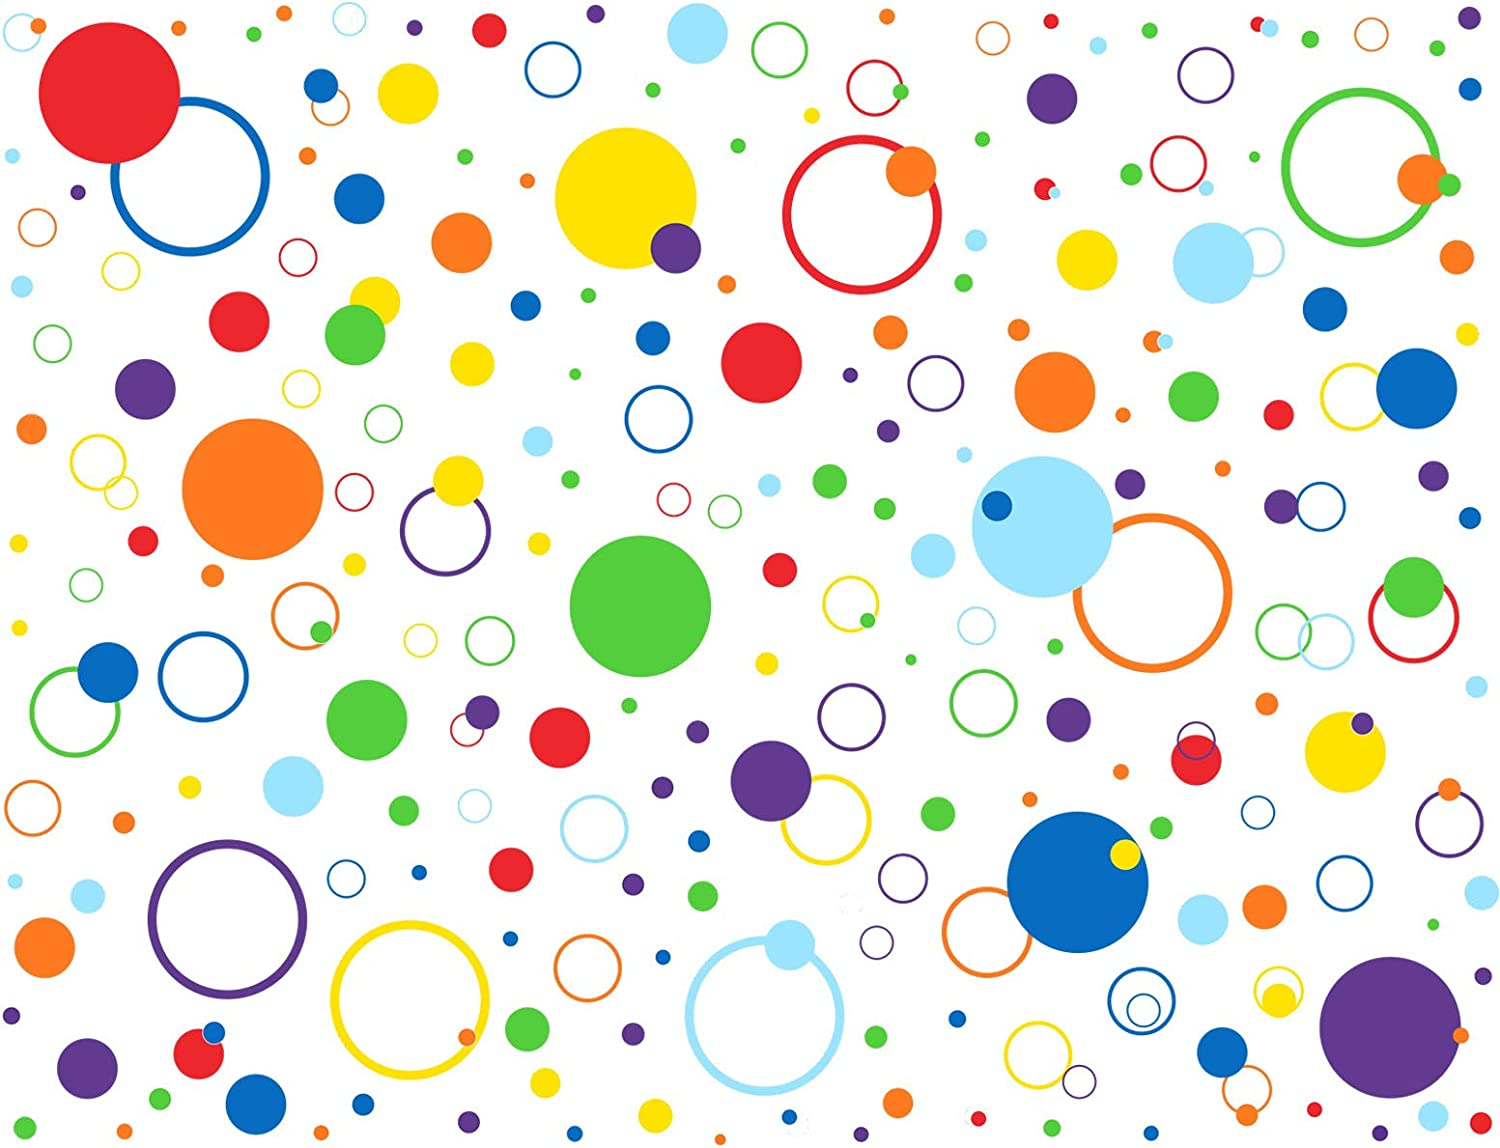 Mozamy Creative Dots Wall Decals (252 Count) Peel and Stick Polka Dots Wall Decal Primary Colors Polka Dot Decor Vinyl Circle Dot Decals Classroom Wall Decals Playroom Wall Decor